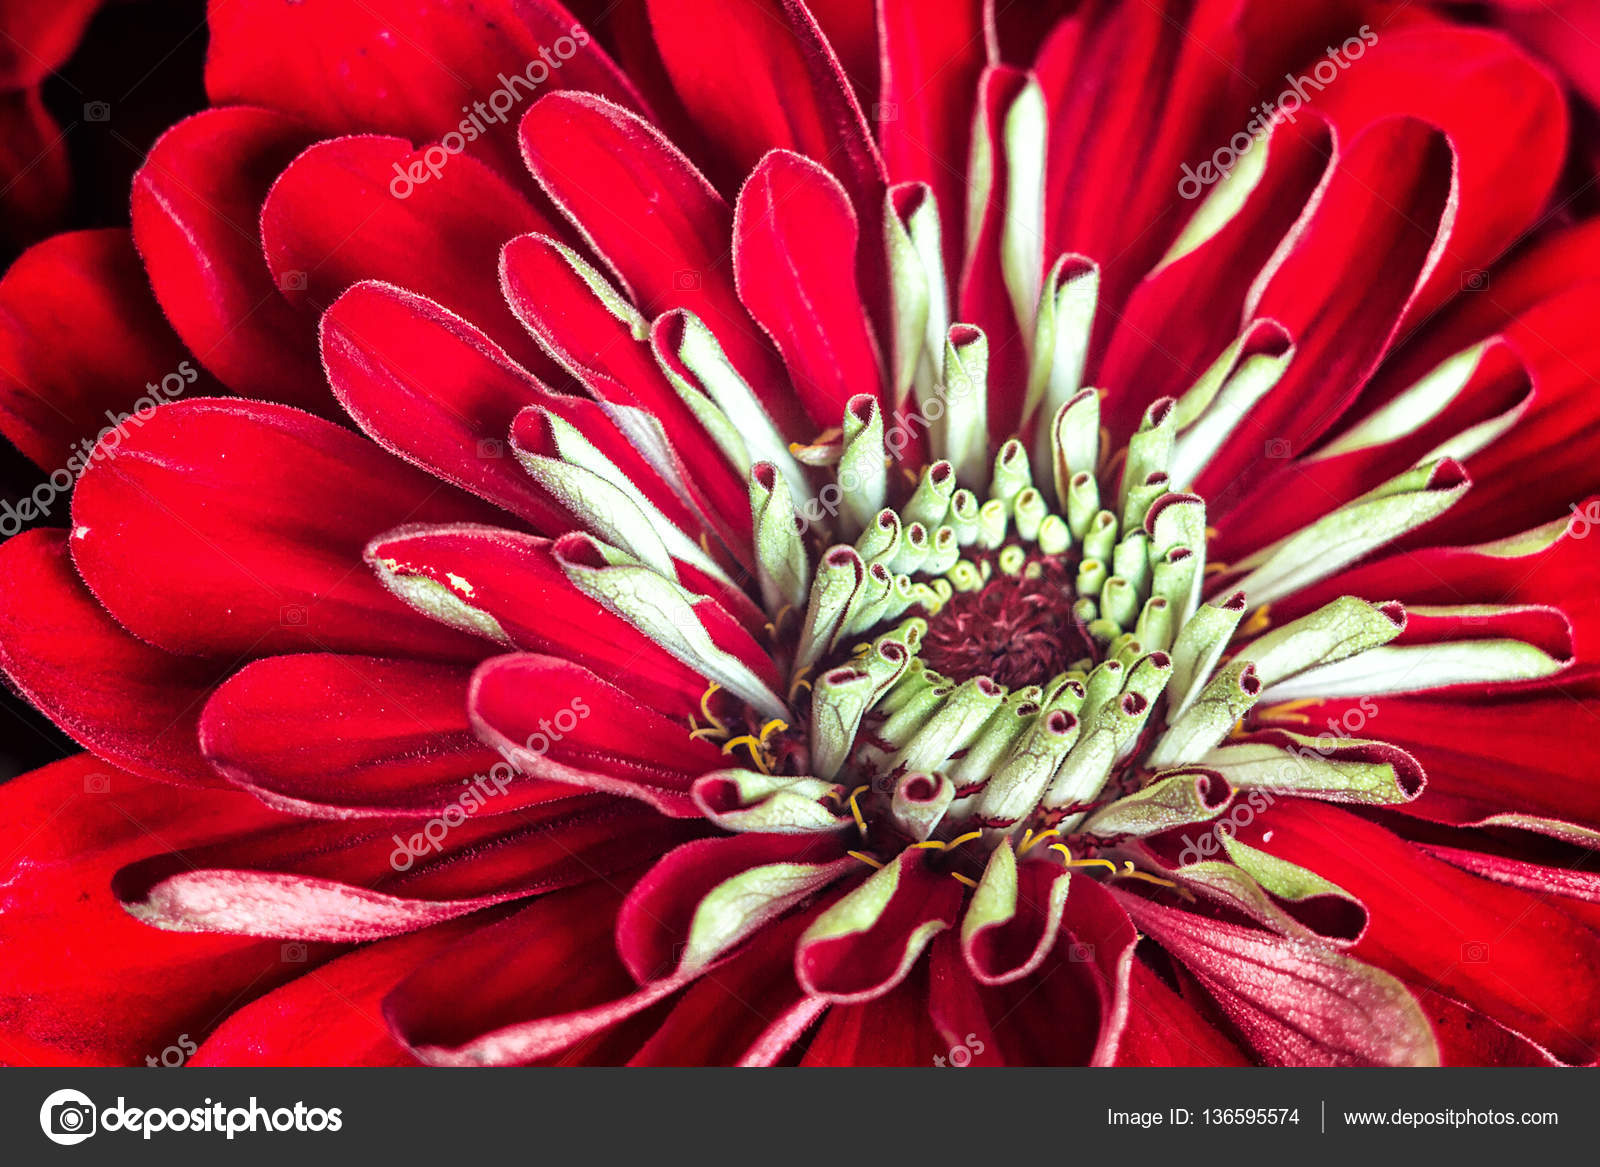 Zinnia elegans known as youth and age common zinnia or elegant zinnia elegans known as youth and age common zinnia or elegant zinnia an annual flowering plant of the genus zinnia one of the best known zinnias izmirmasajfo Image collections